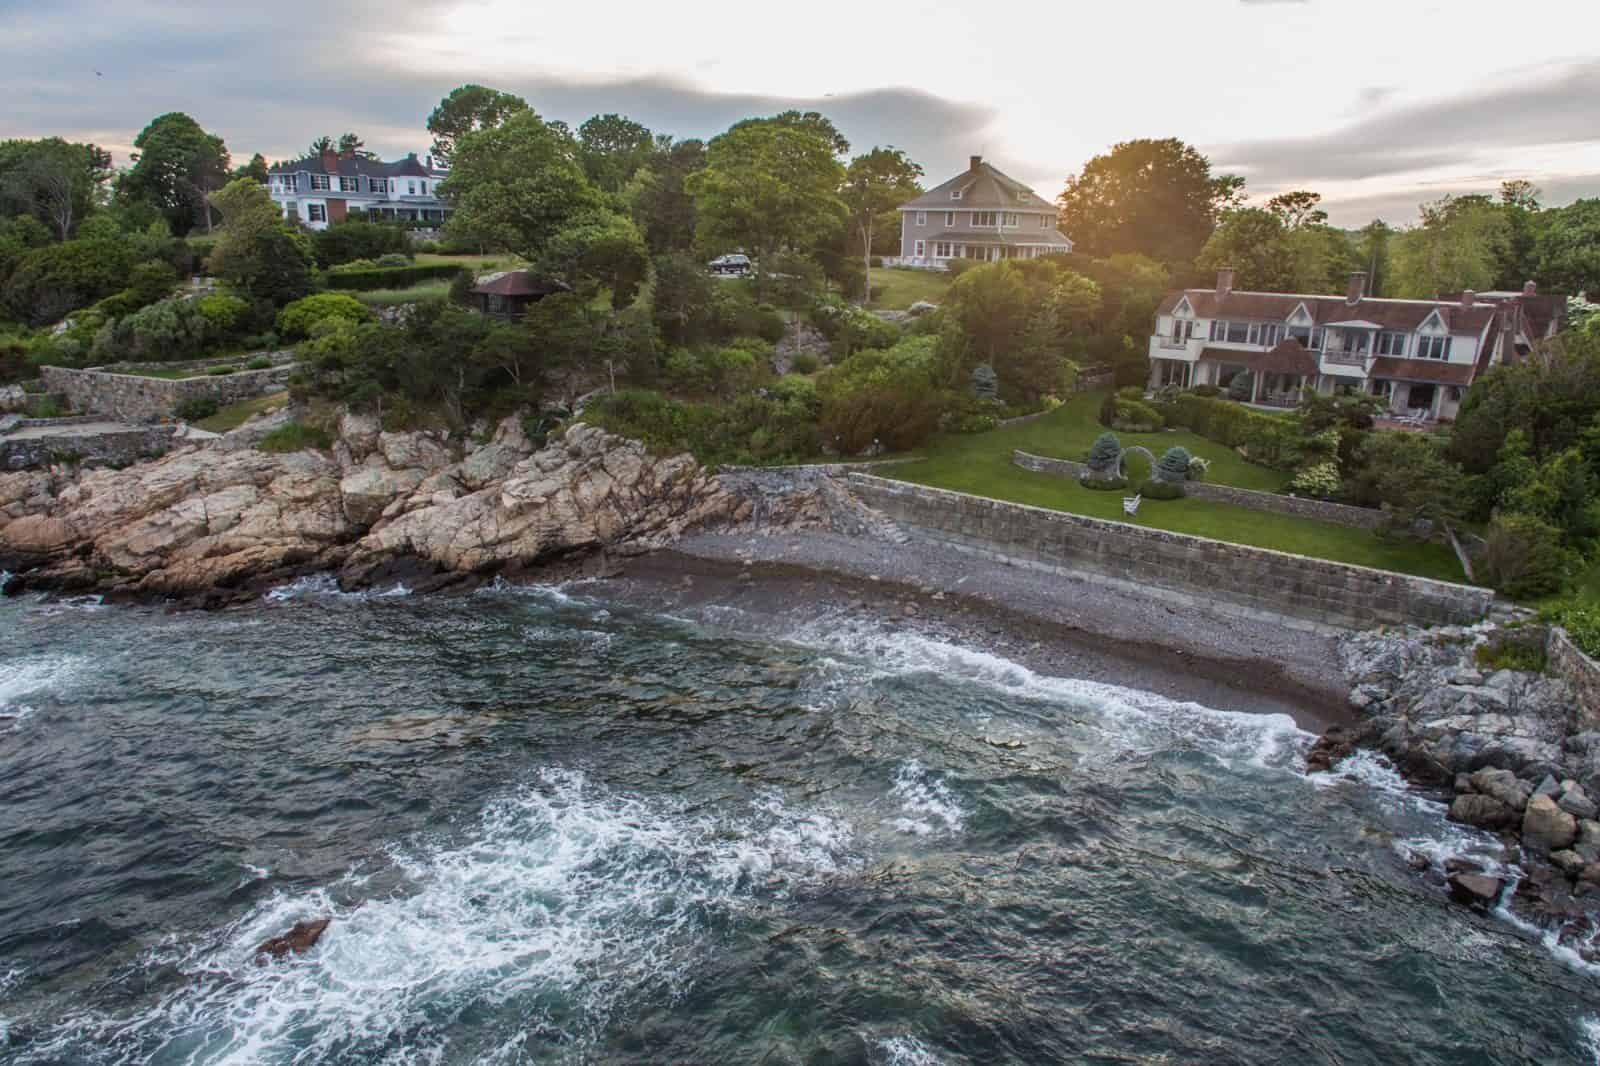 drone photo of residential property in Manchester By The Sea, MA